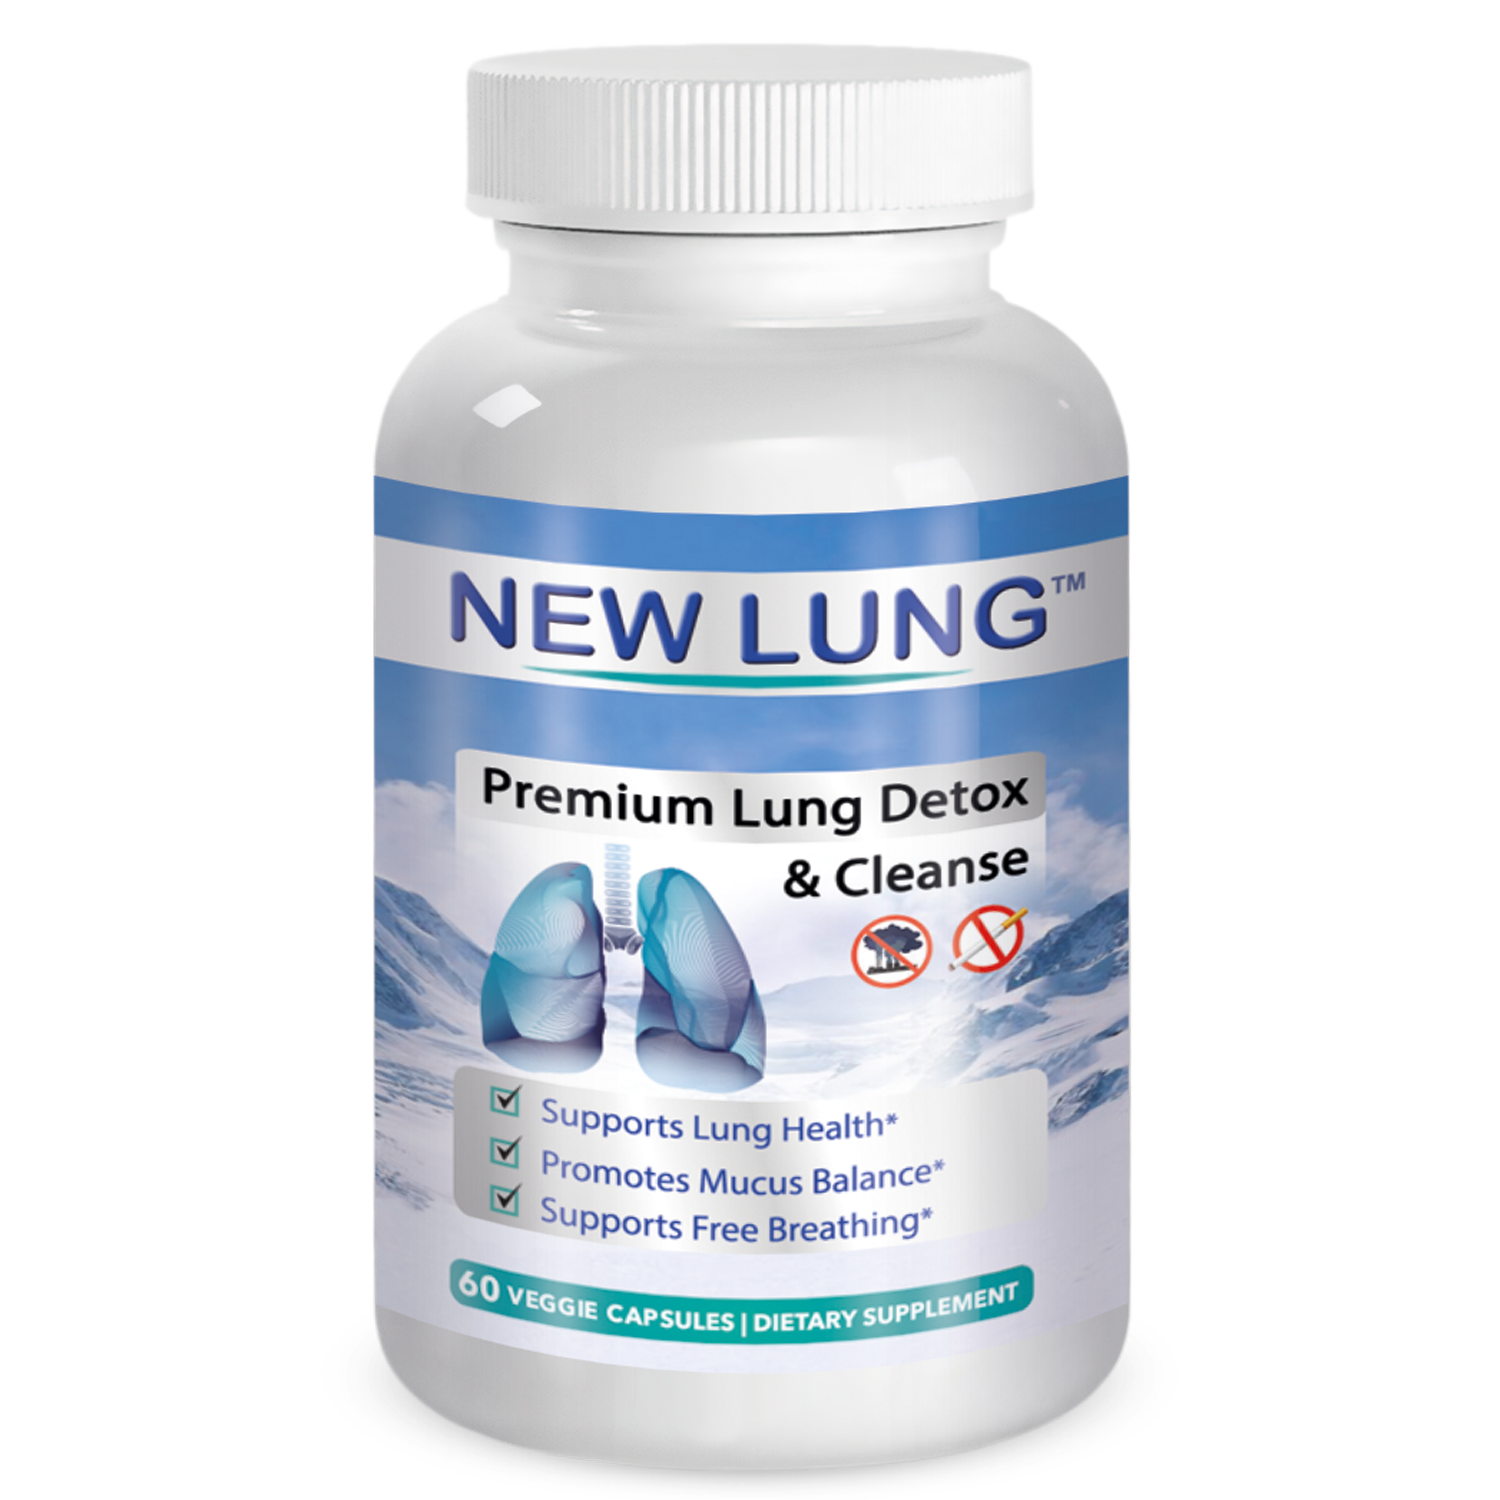 NEW LUNG™ Top Rated Lung Detox Lung Cleanse